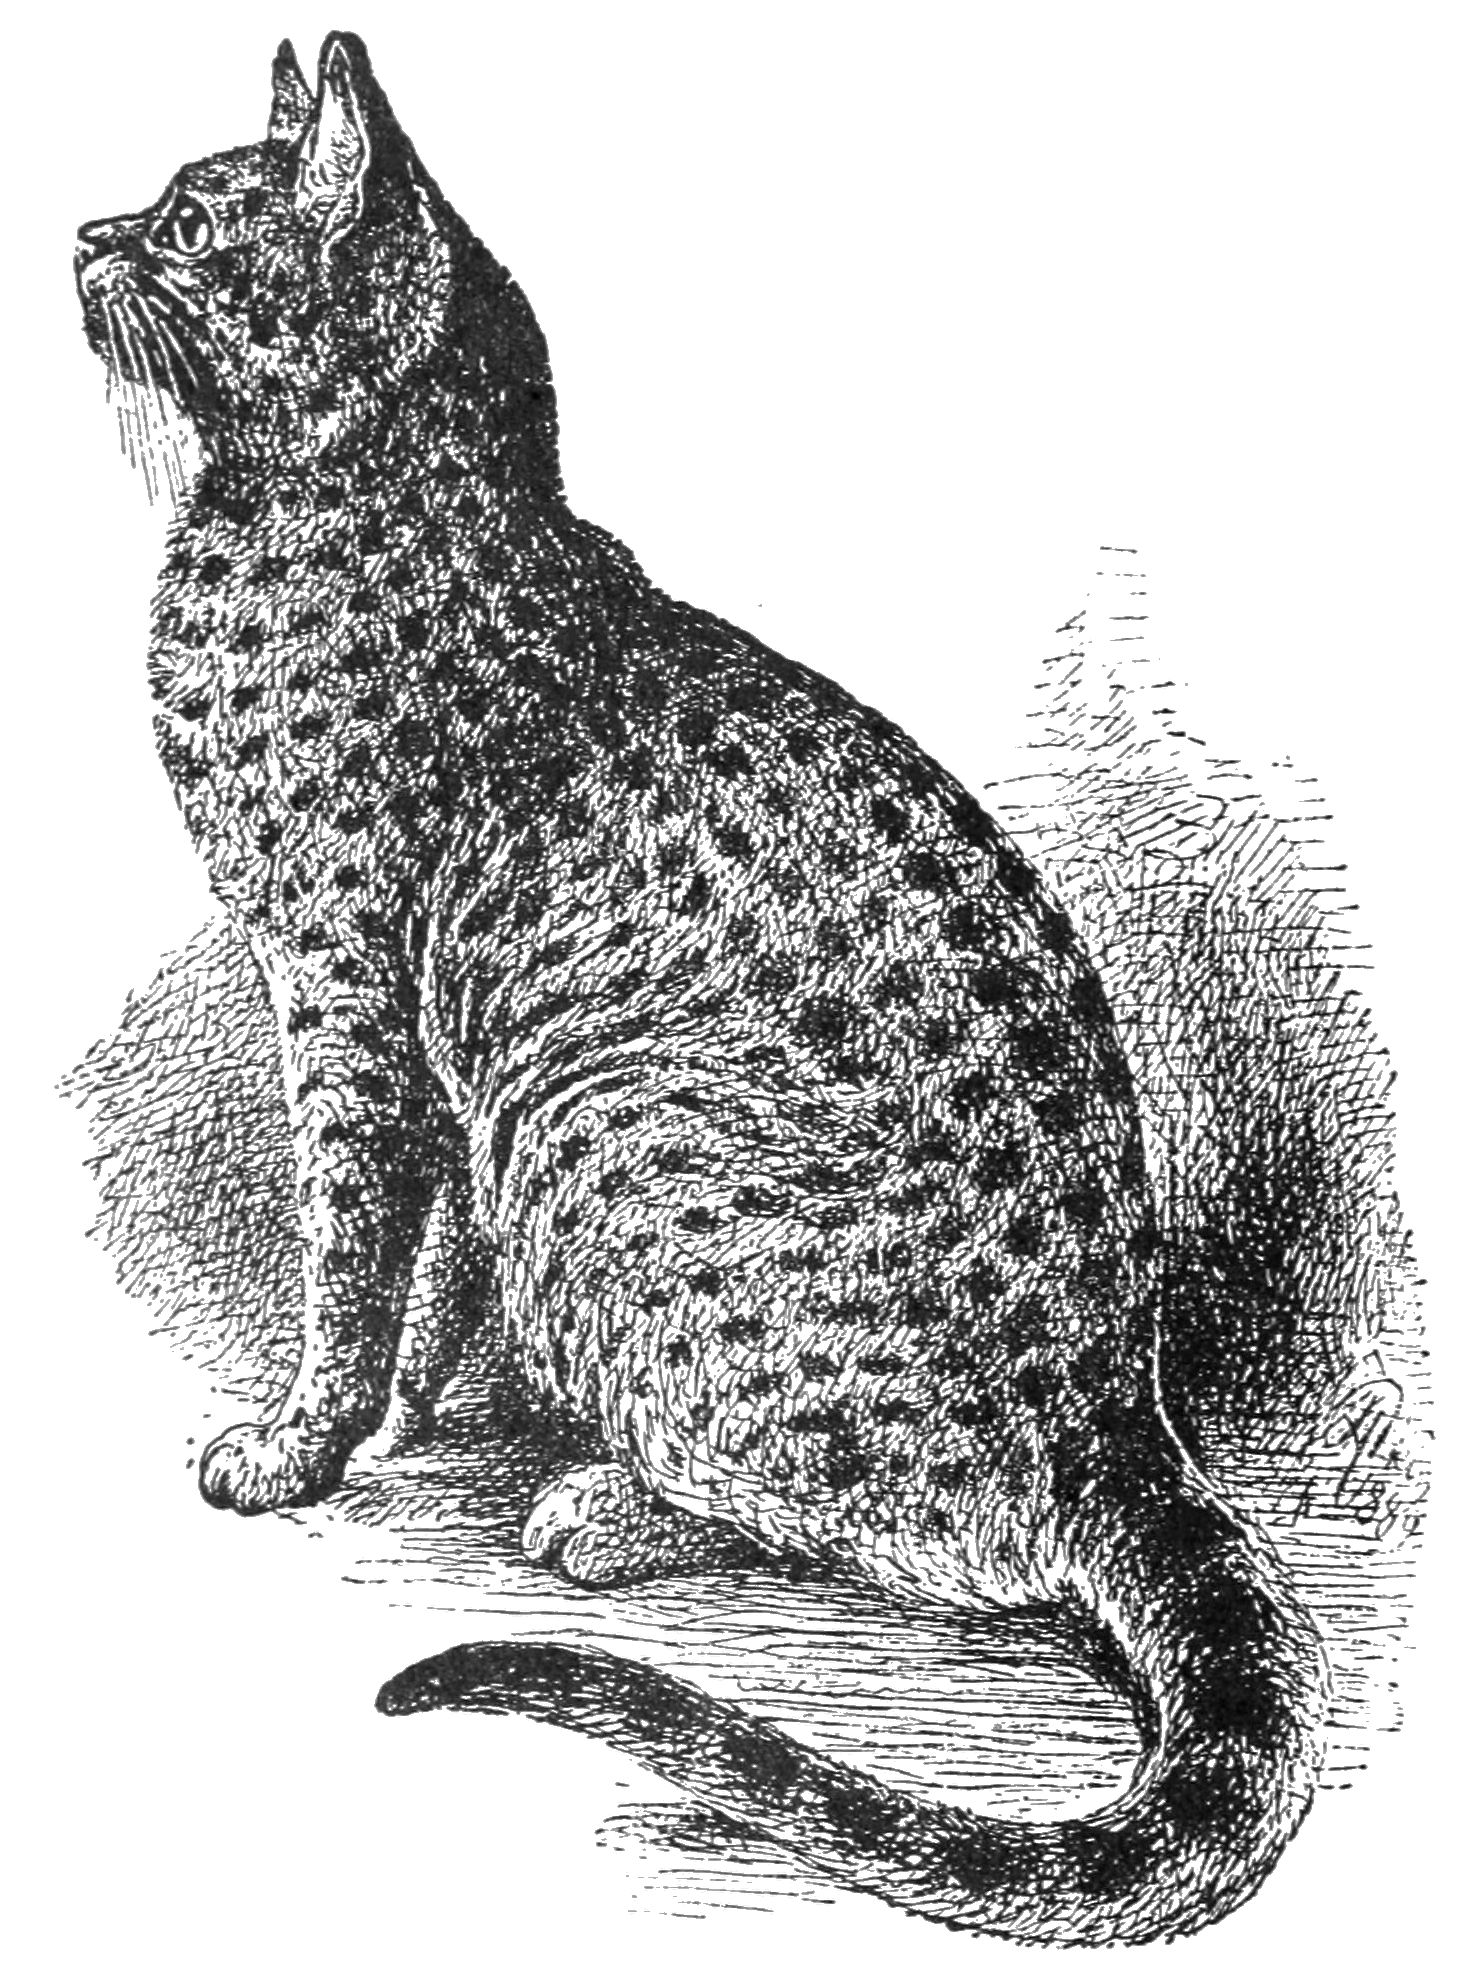 PSM V37 D110 Finely marked spotted tabby cat.jpg